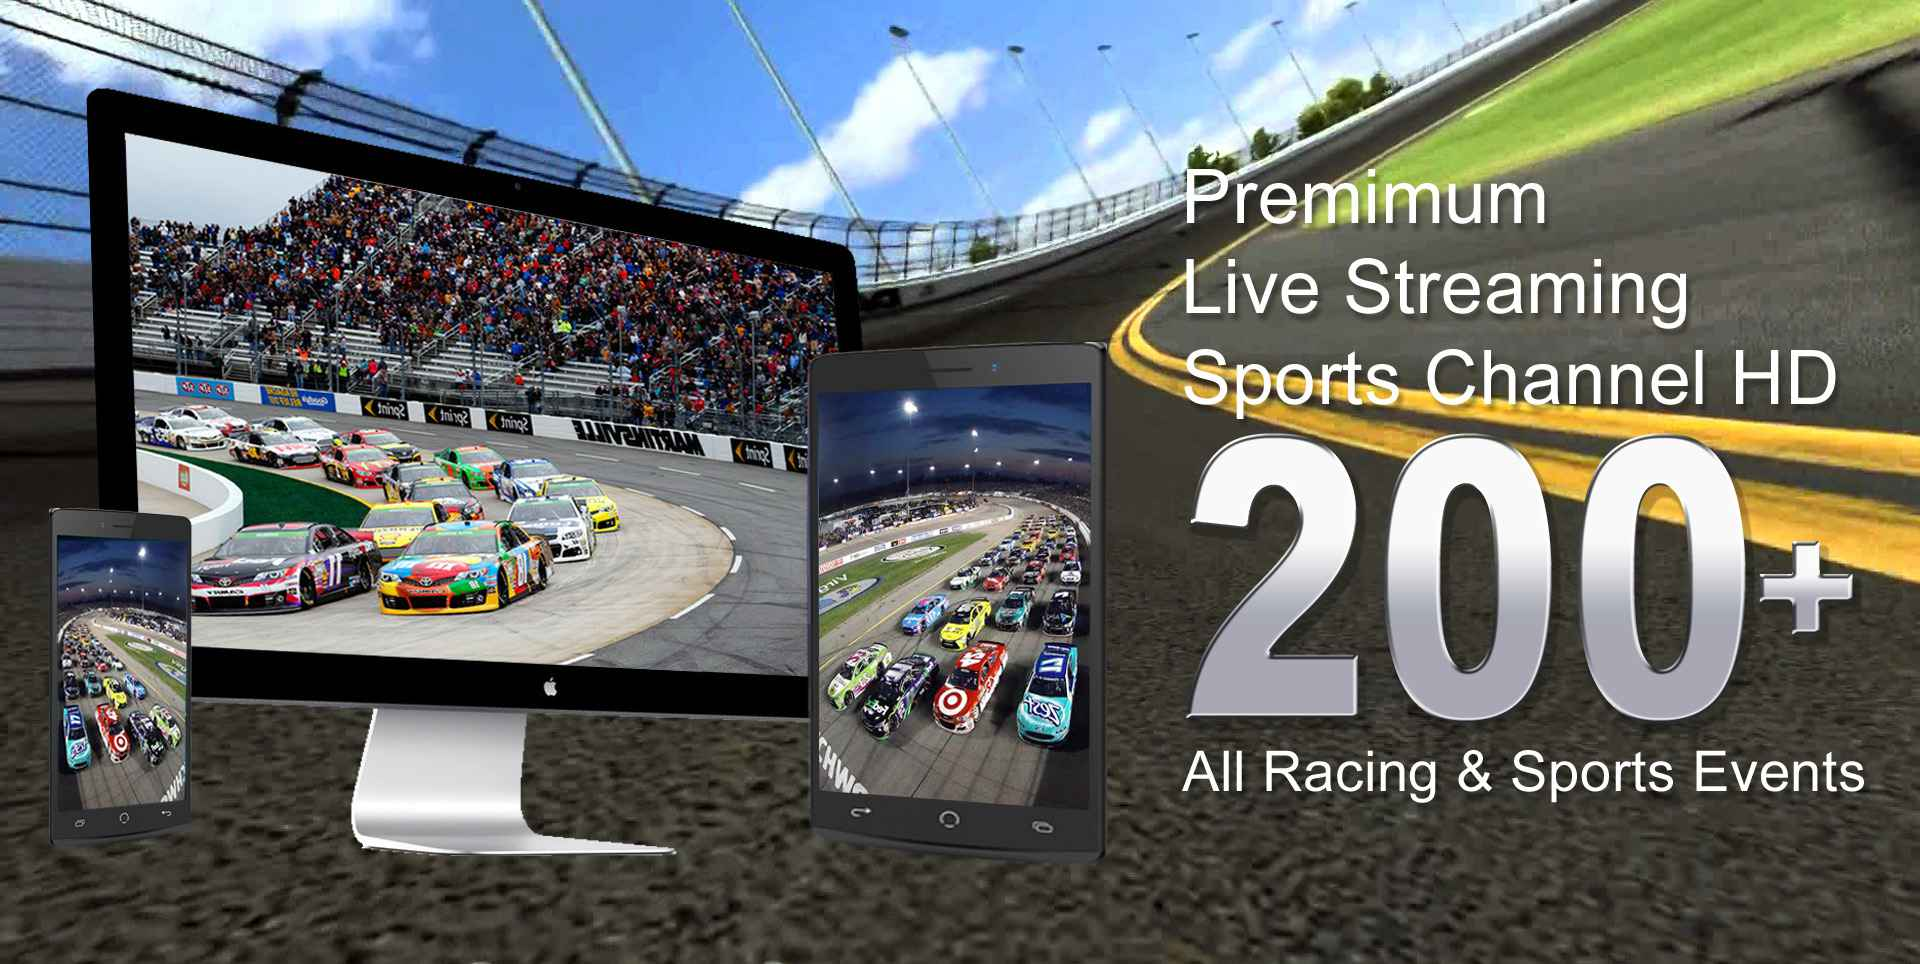 2016 Whelen Southern Modified 150 Live